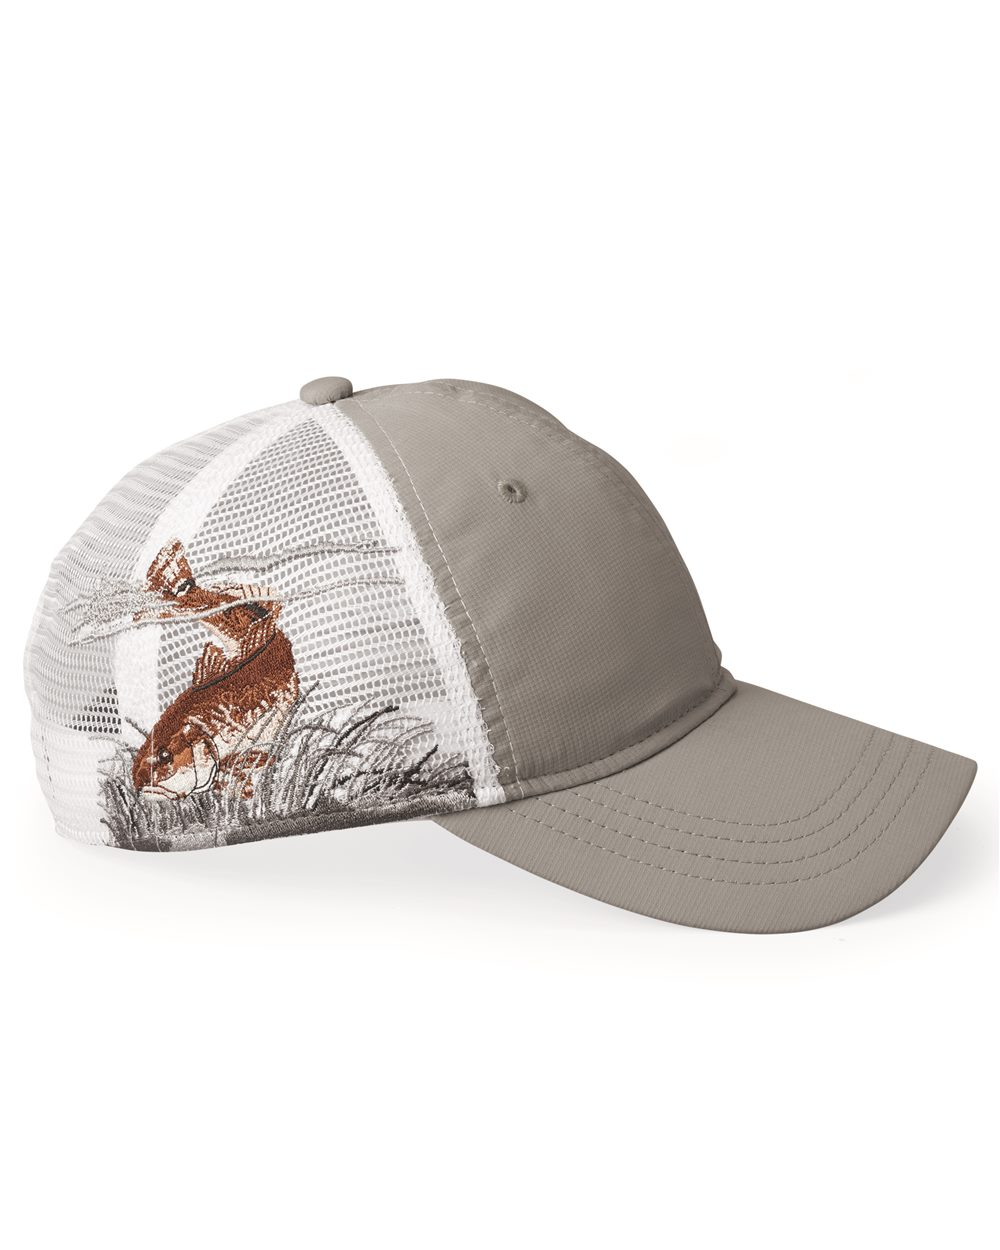 DRI DUCK 3454 - Redfish Performance Mesh Cap